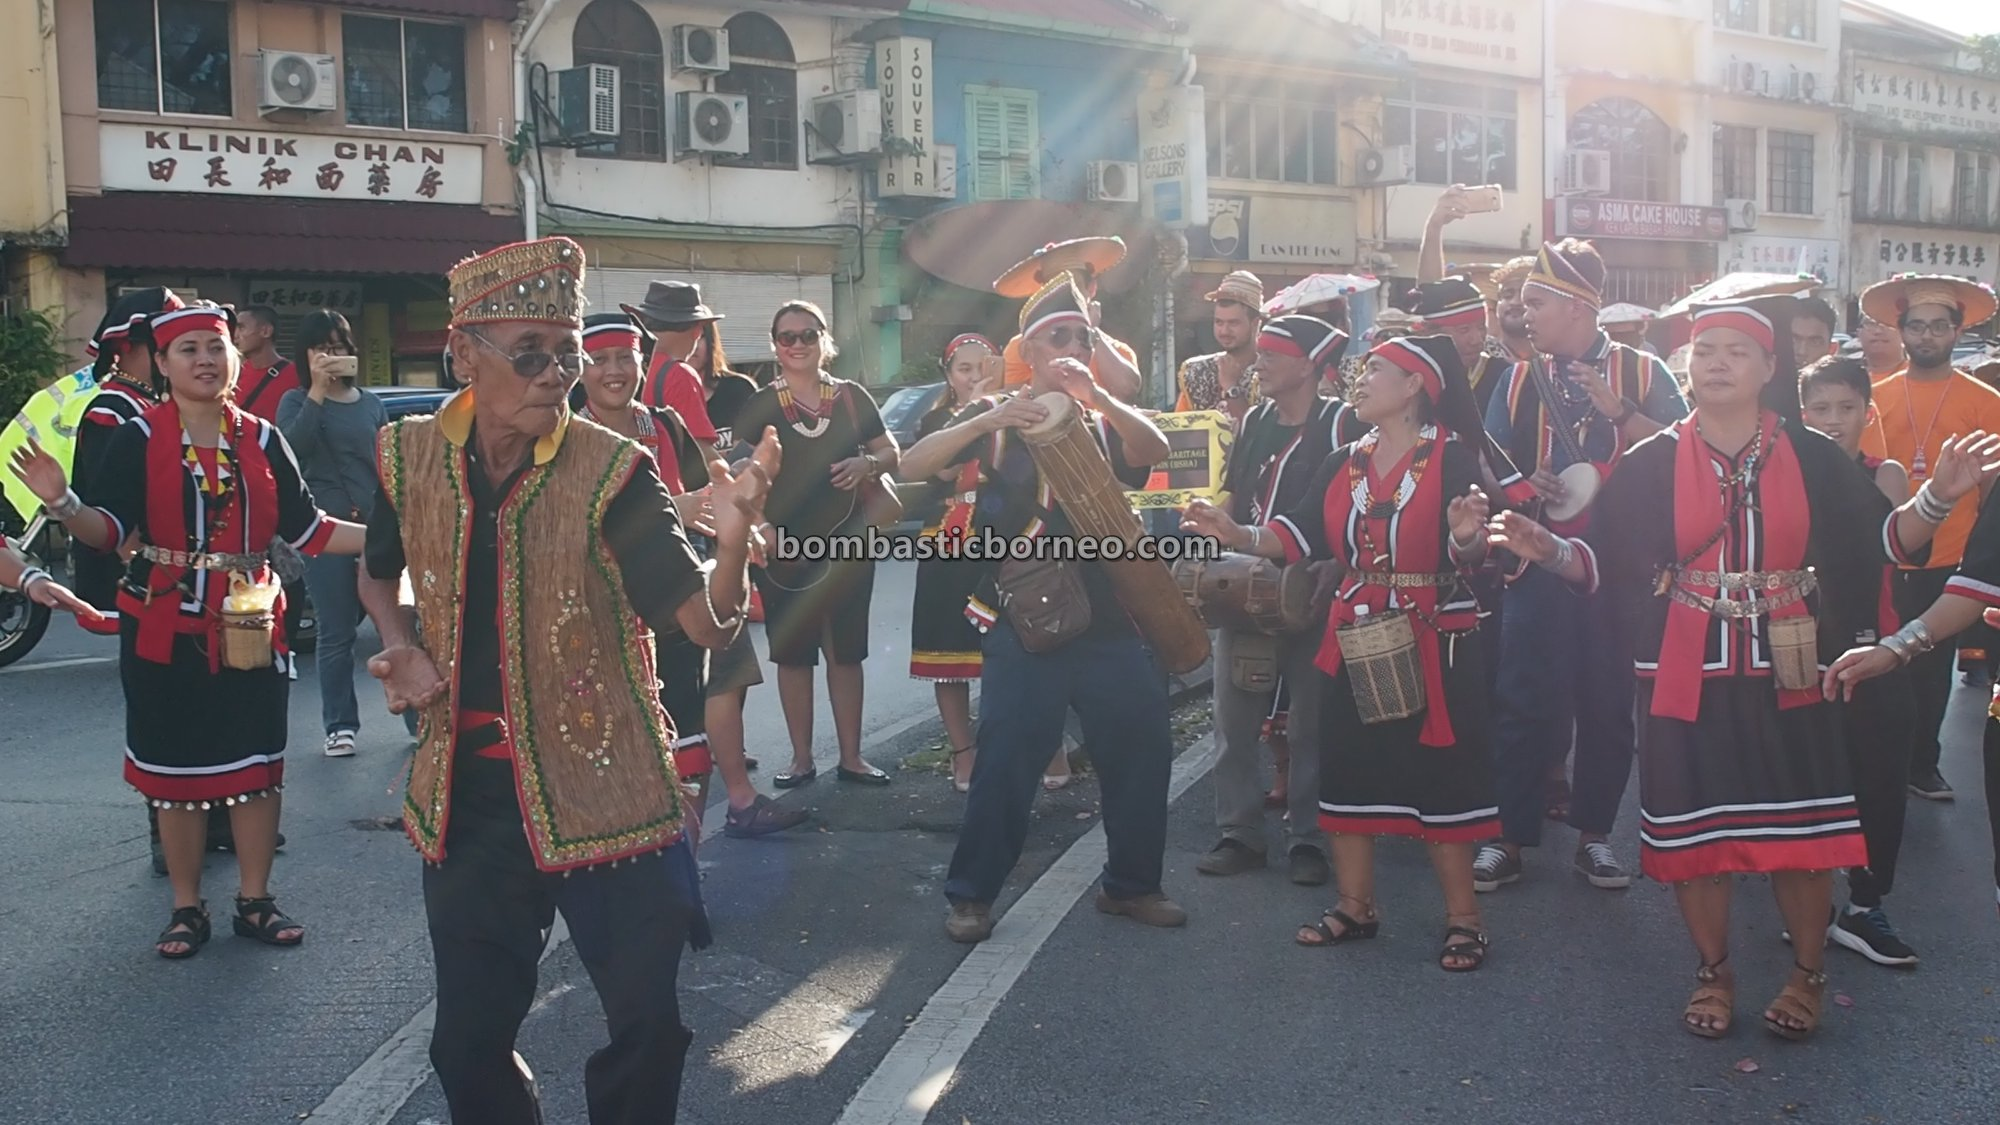 Gawai Dayak Bidayuh, Street Parade, authentic, culture, Kuching Waterfront, Malaysia, indigenous, native, tribe, tourist attraction, Travel guide, Trans Border, 探索婆罗洲游踪, 砂拉越原住民达雅, 古晋比达友丰收节